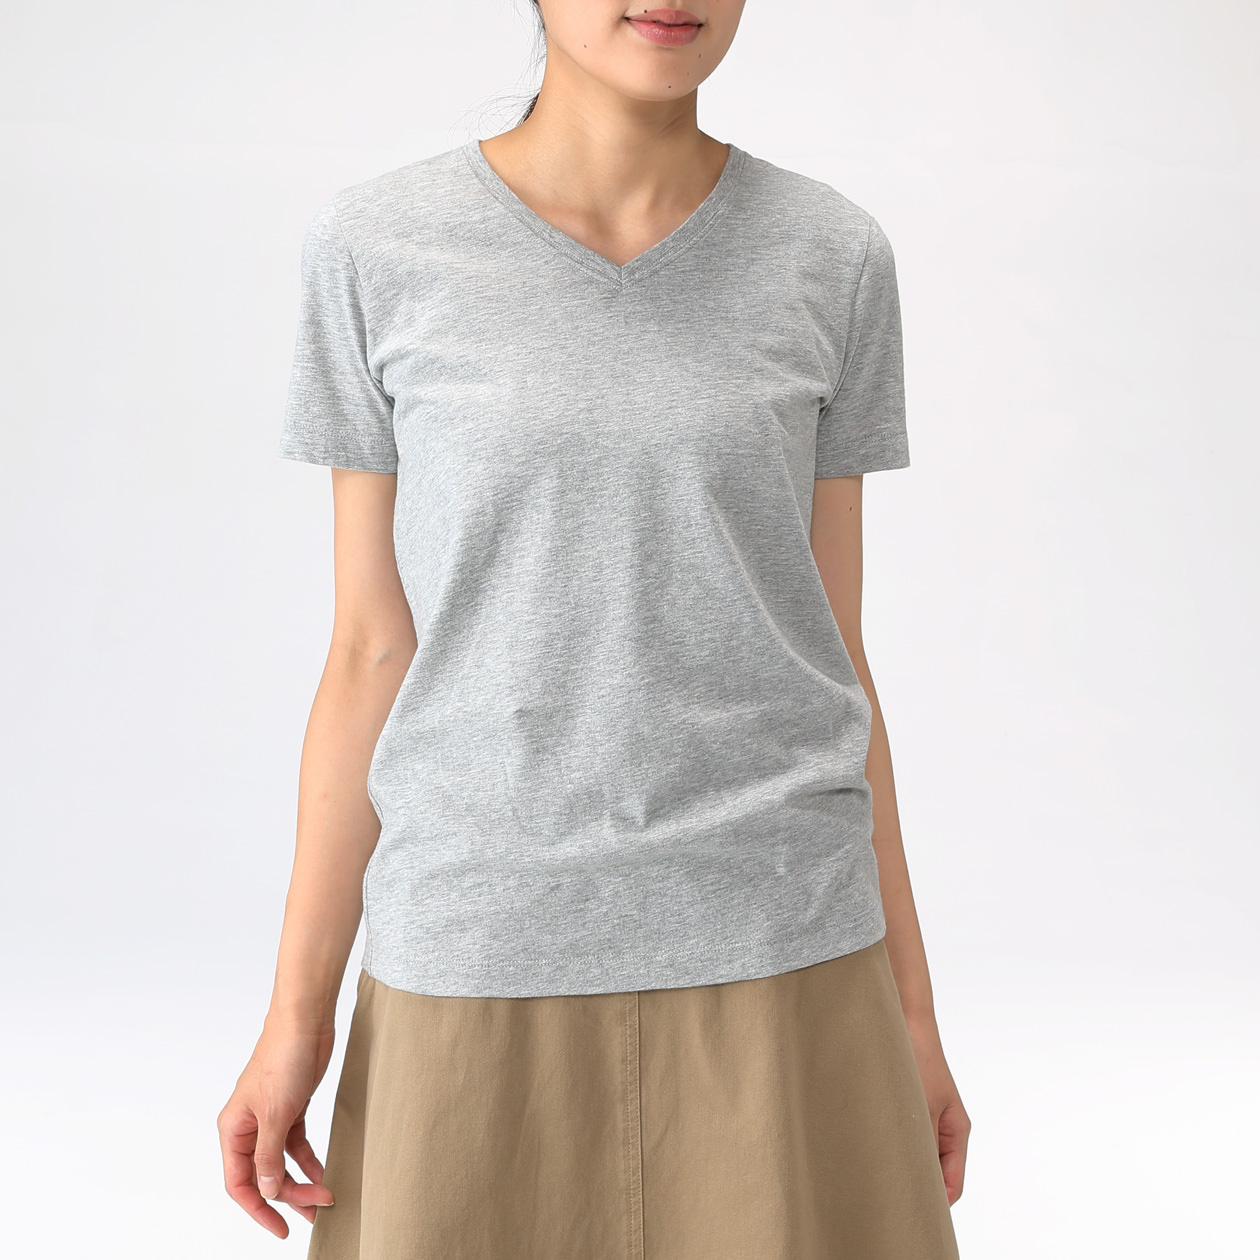 Ladies' Organic Cotton Short Sleeve T-shirt, $13.90